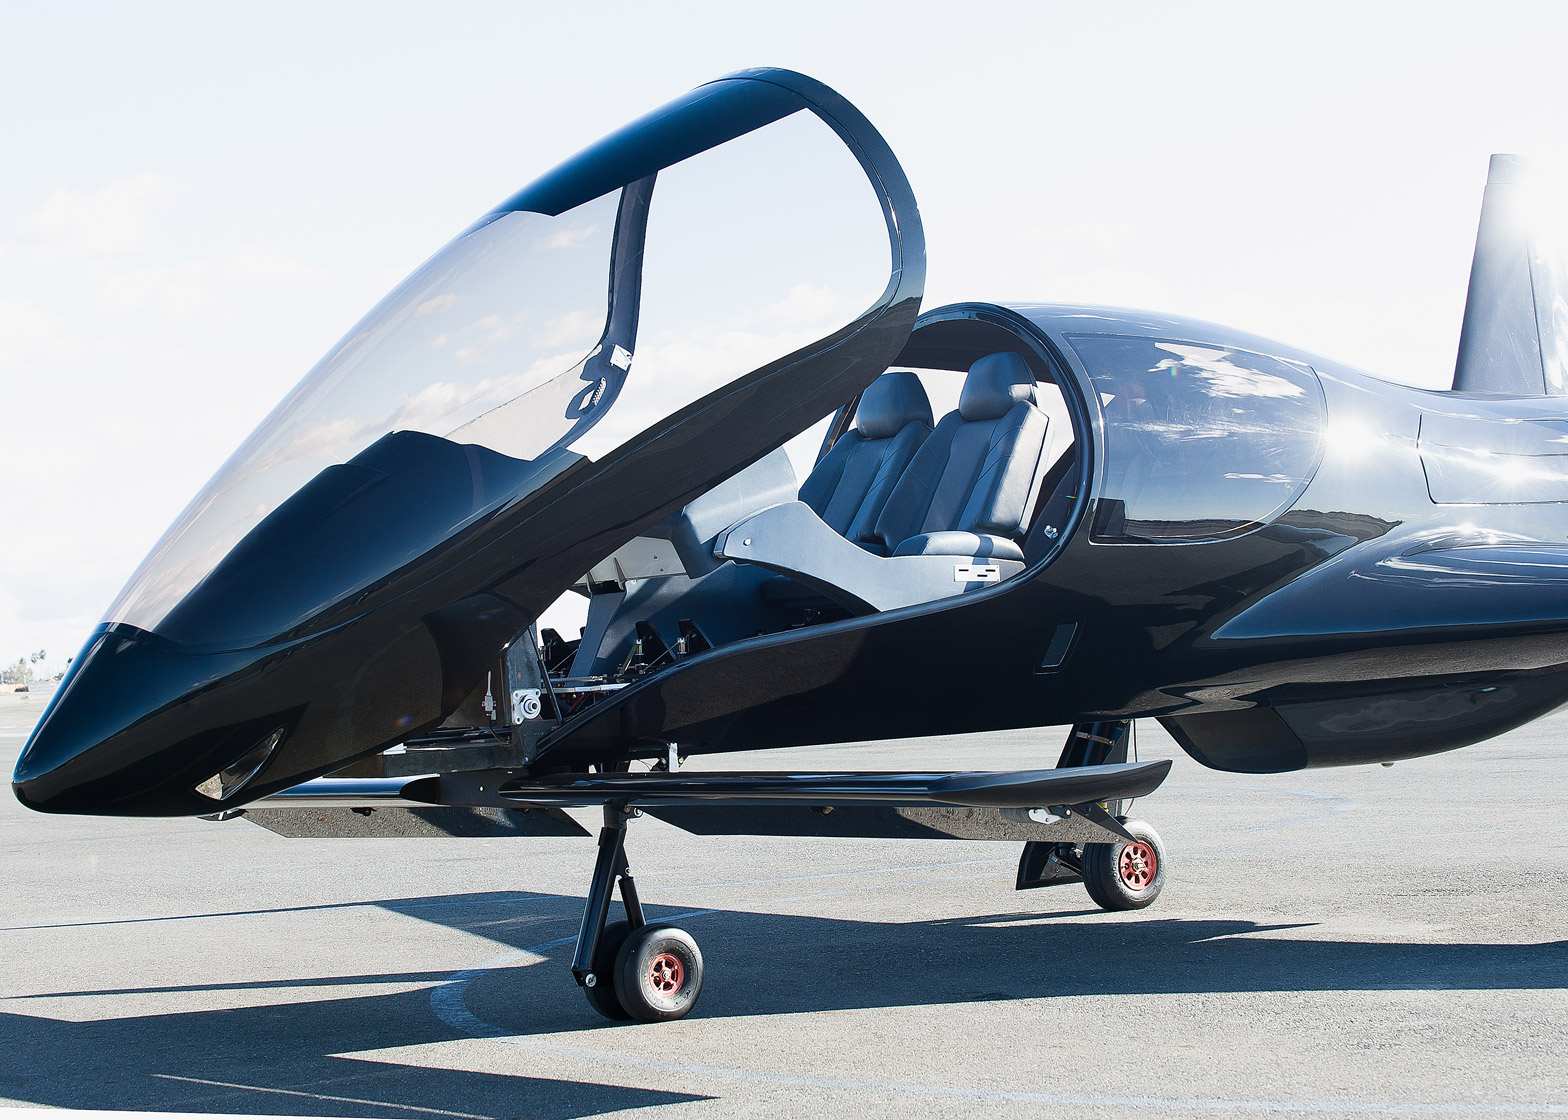 Cobalt range of small luxury planes called Co50 Valkyrie and the Valkryie-X